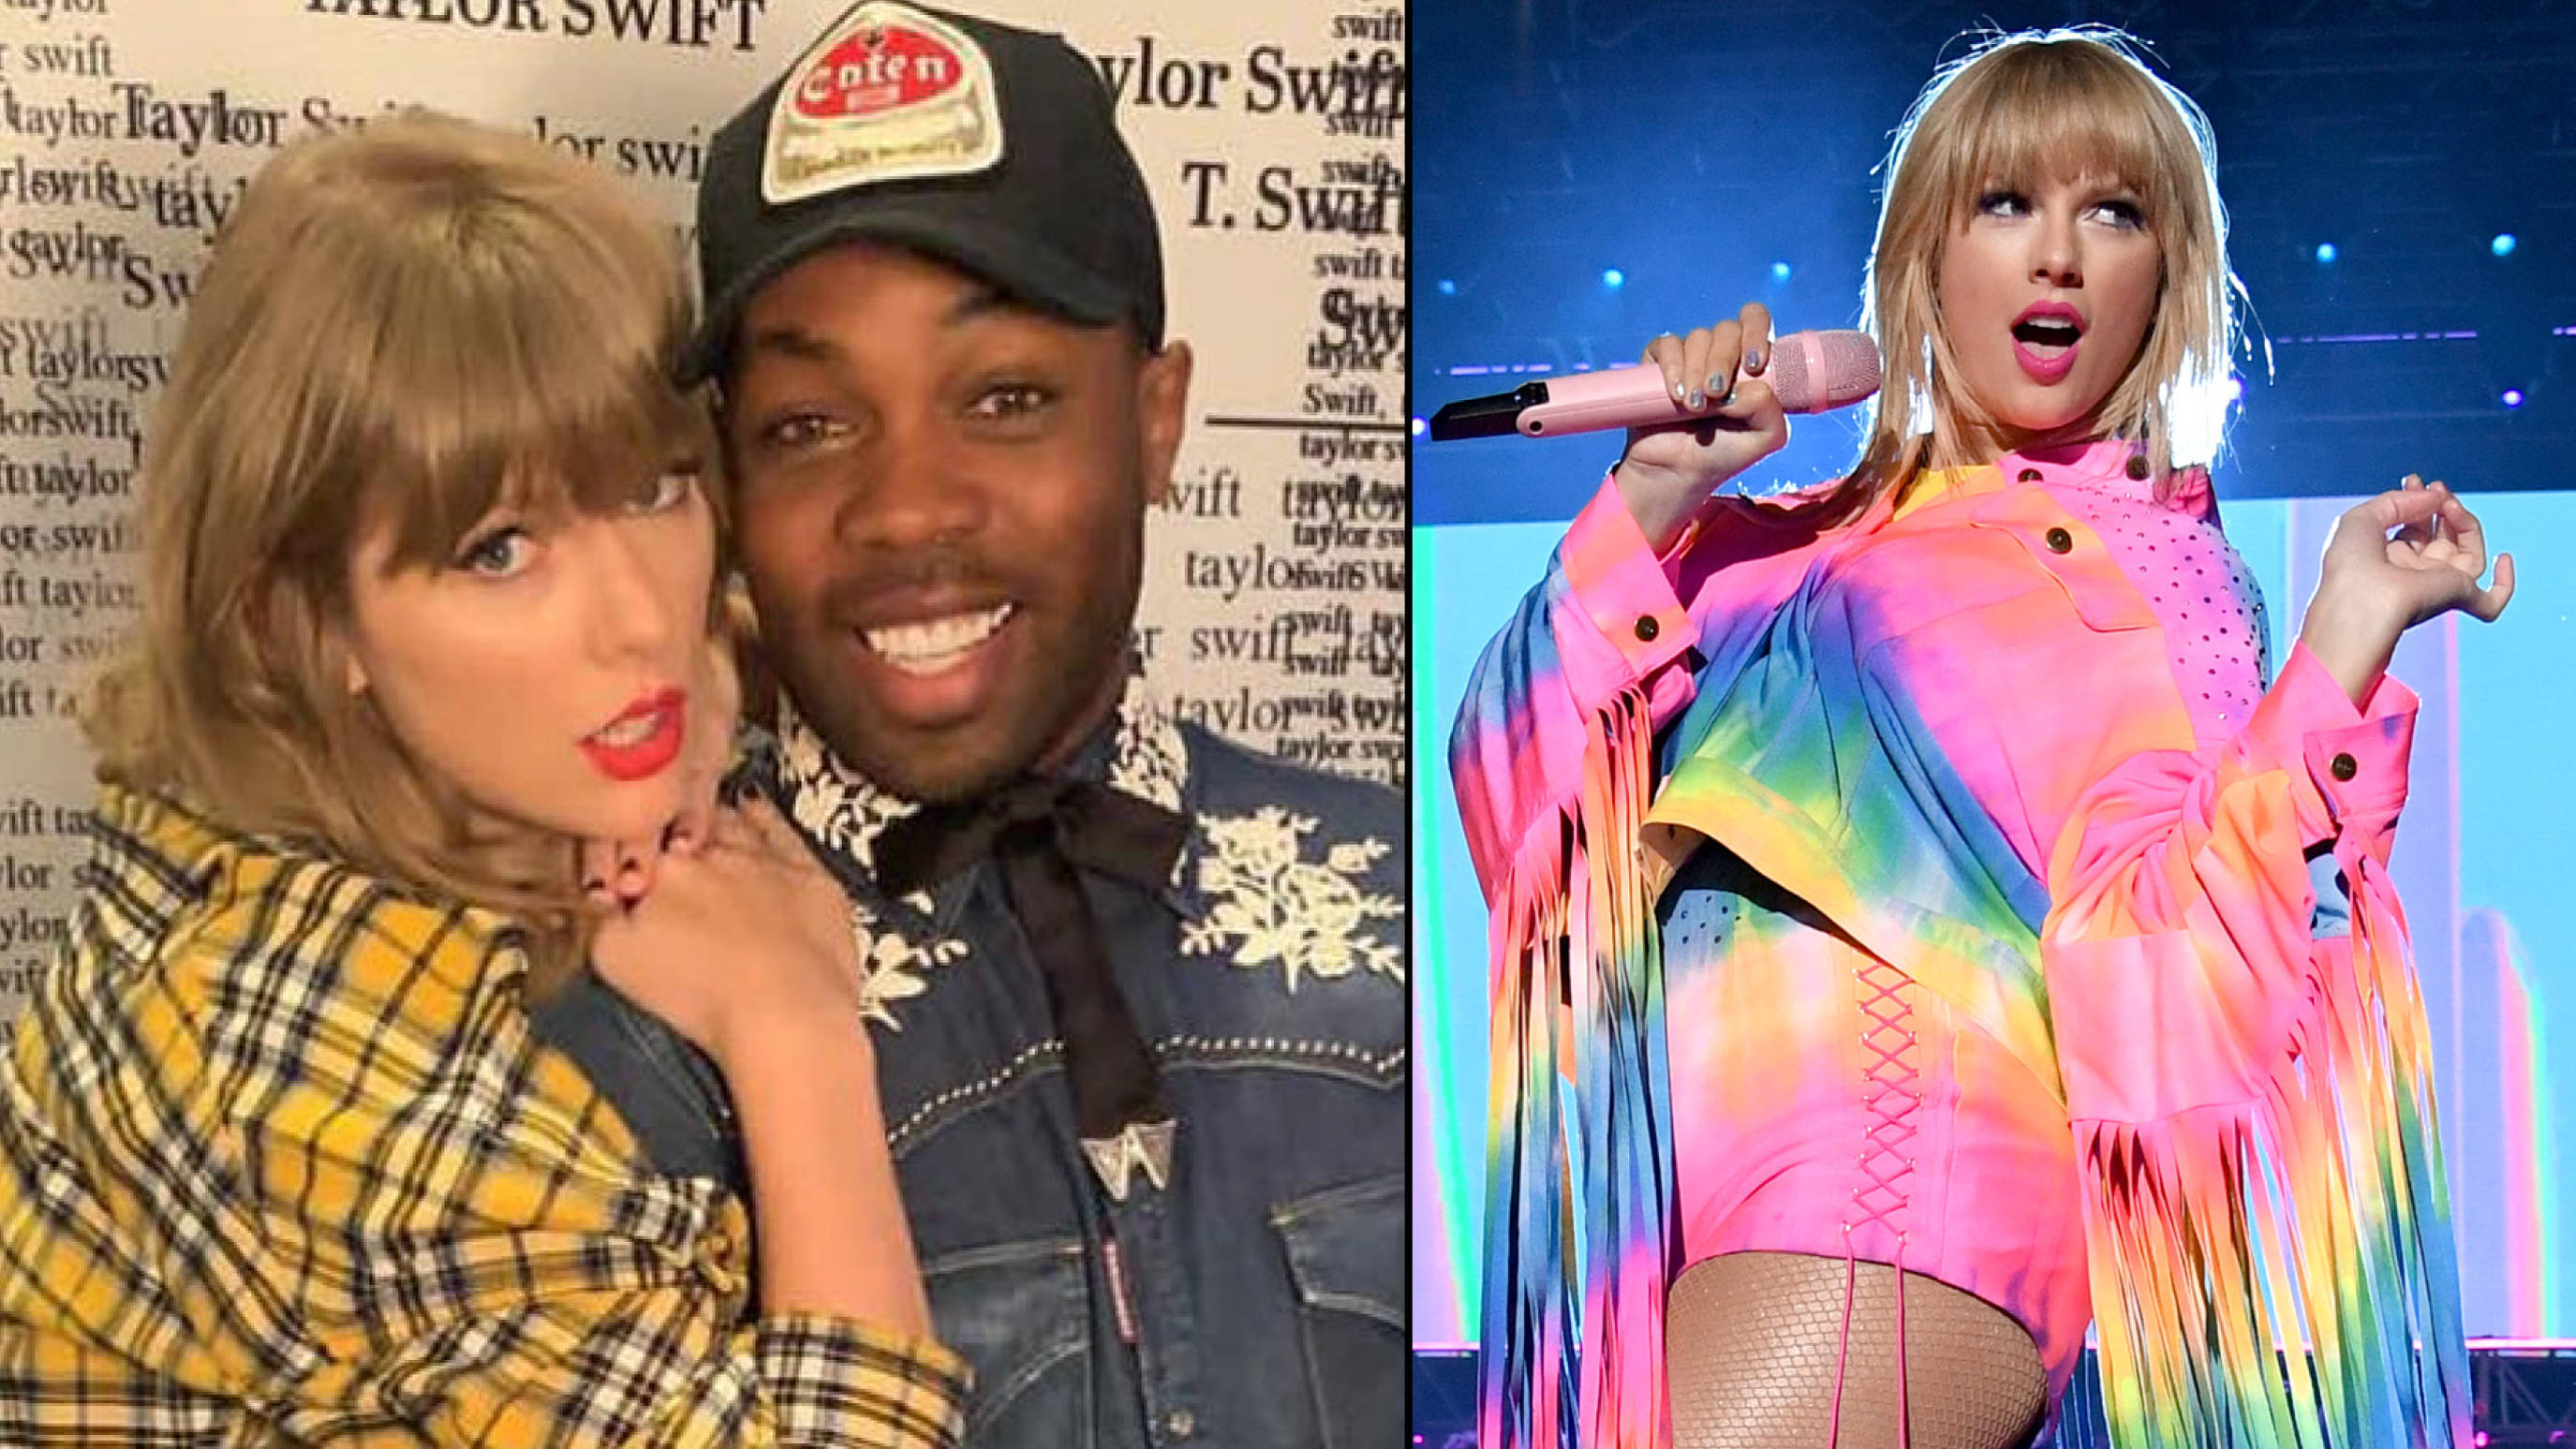 Taylor Swift reveals Todrick Hall inspired her to 'clarify' stance on LGBTQ+ issues